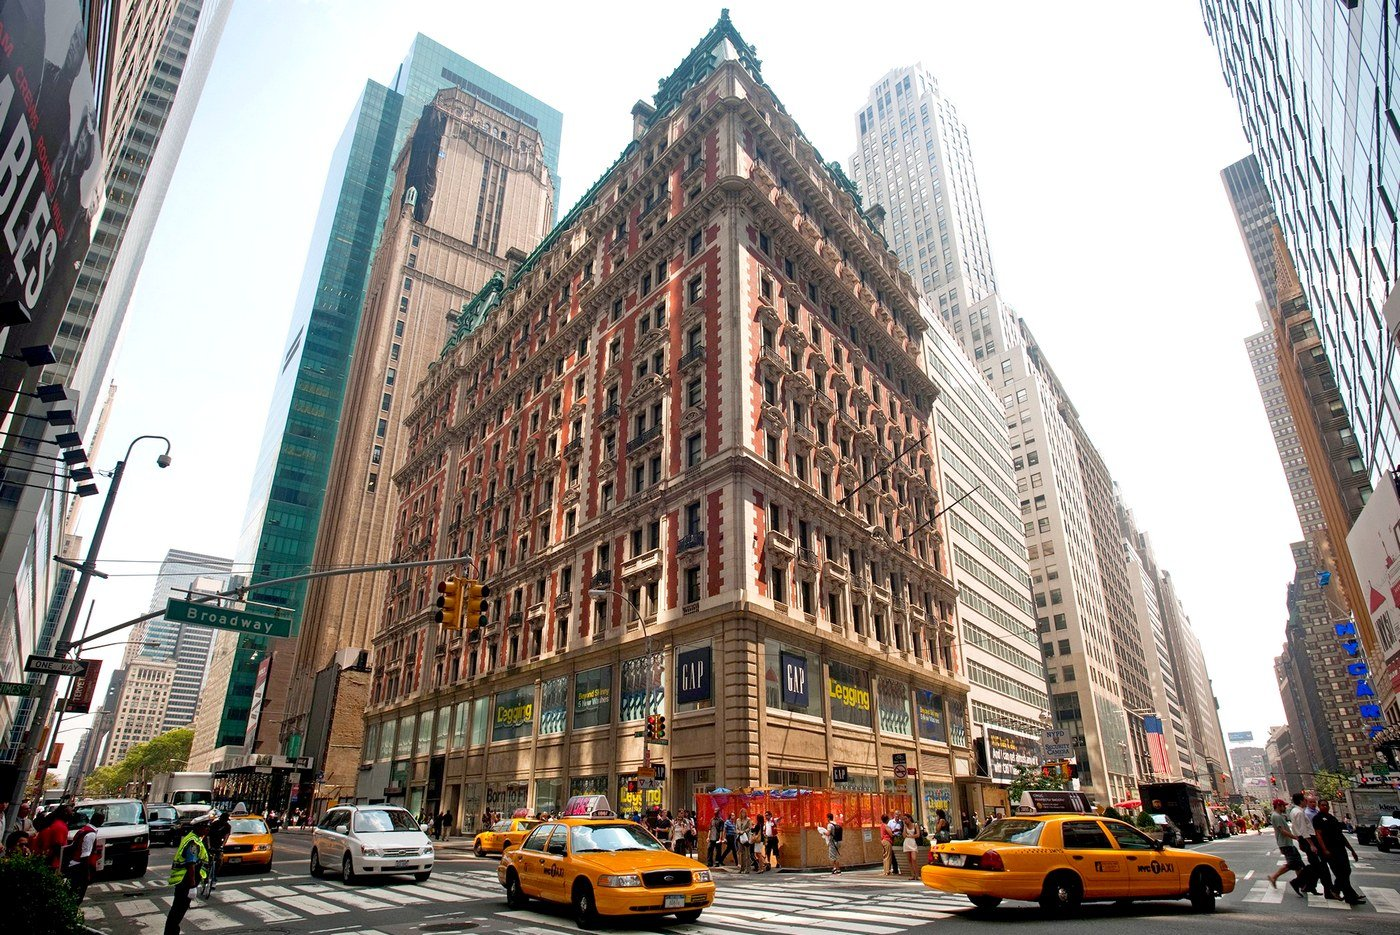 50% Off Voucher Code Printable New York Hotel